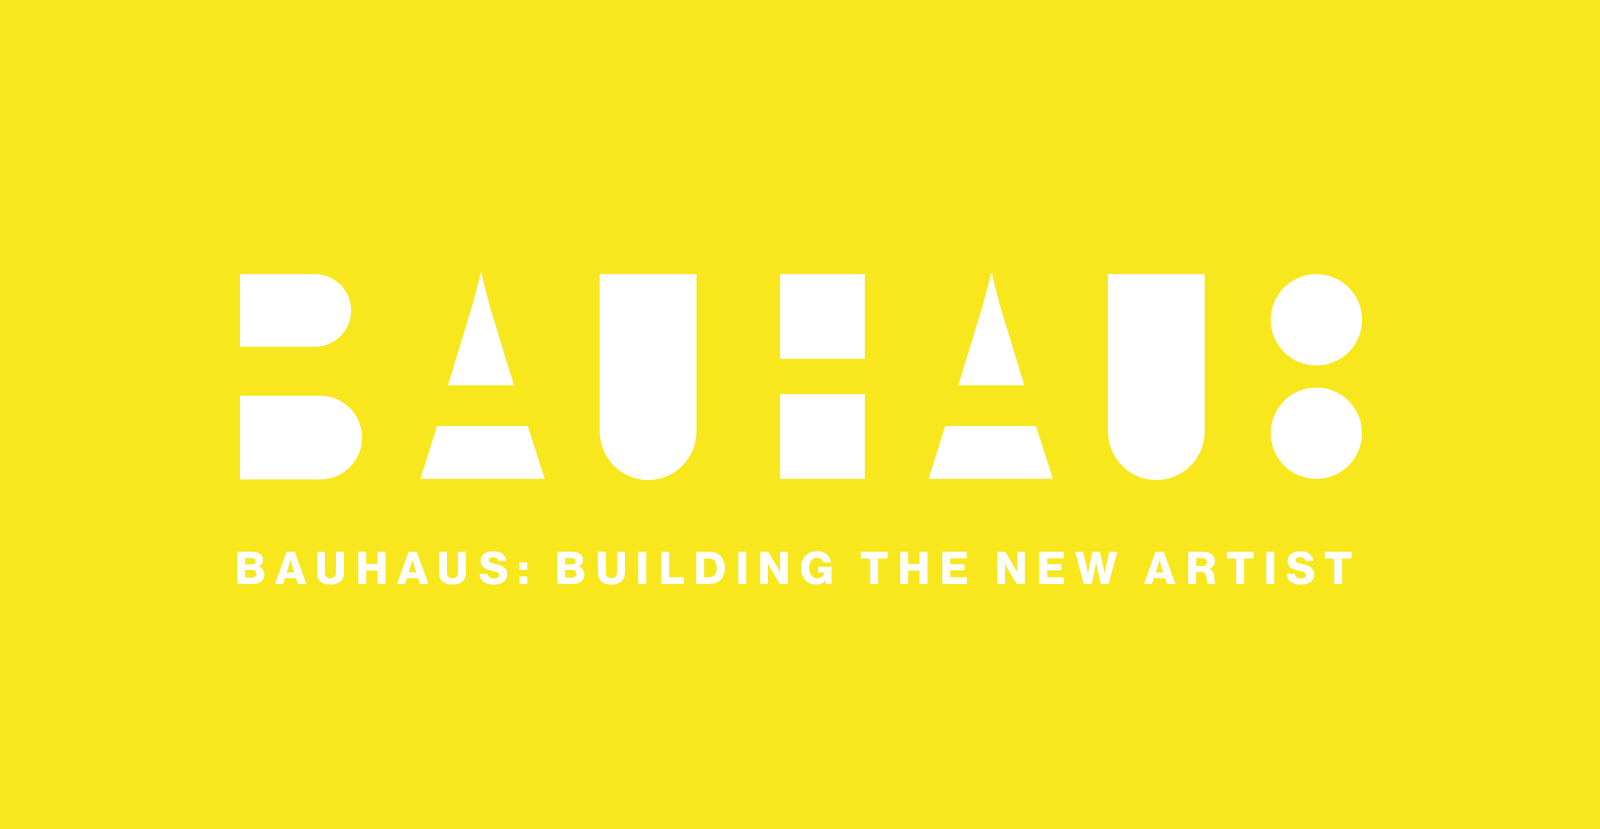 Yellow graphic with white text: Bauhaus: Building the New Artist.